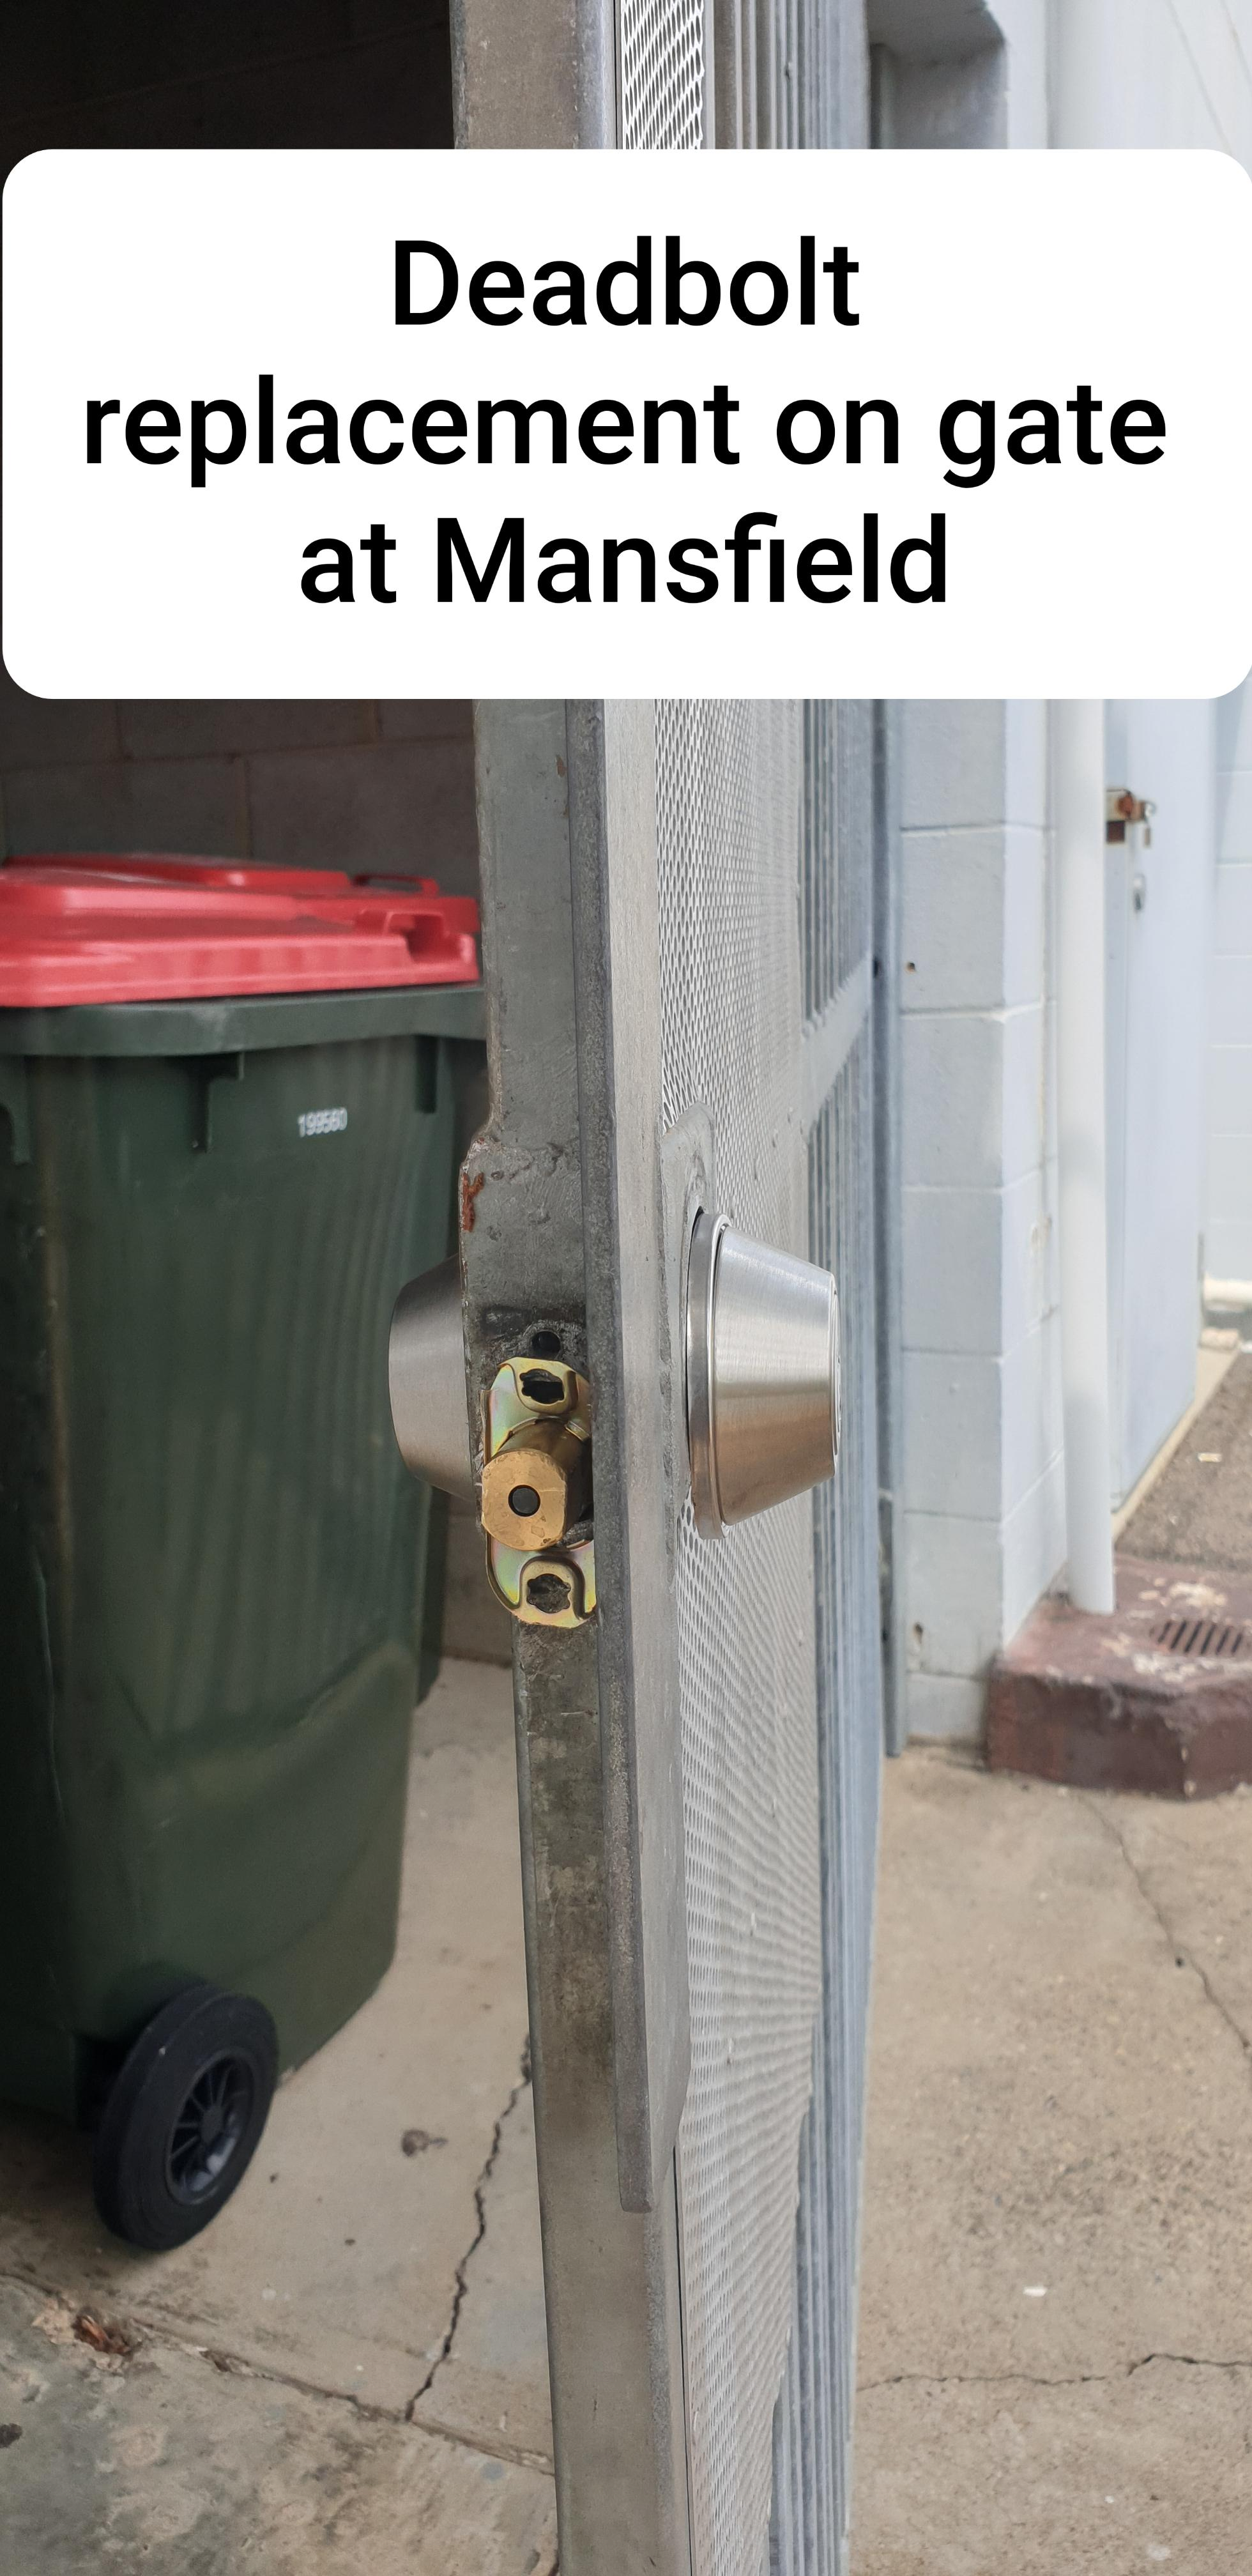 Old deadbolt on a gate that is to be replaced